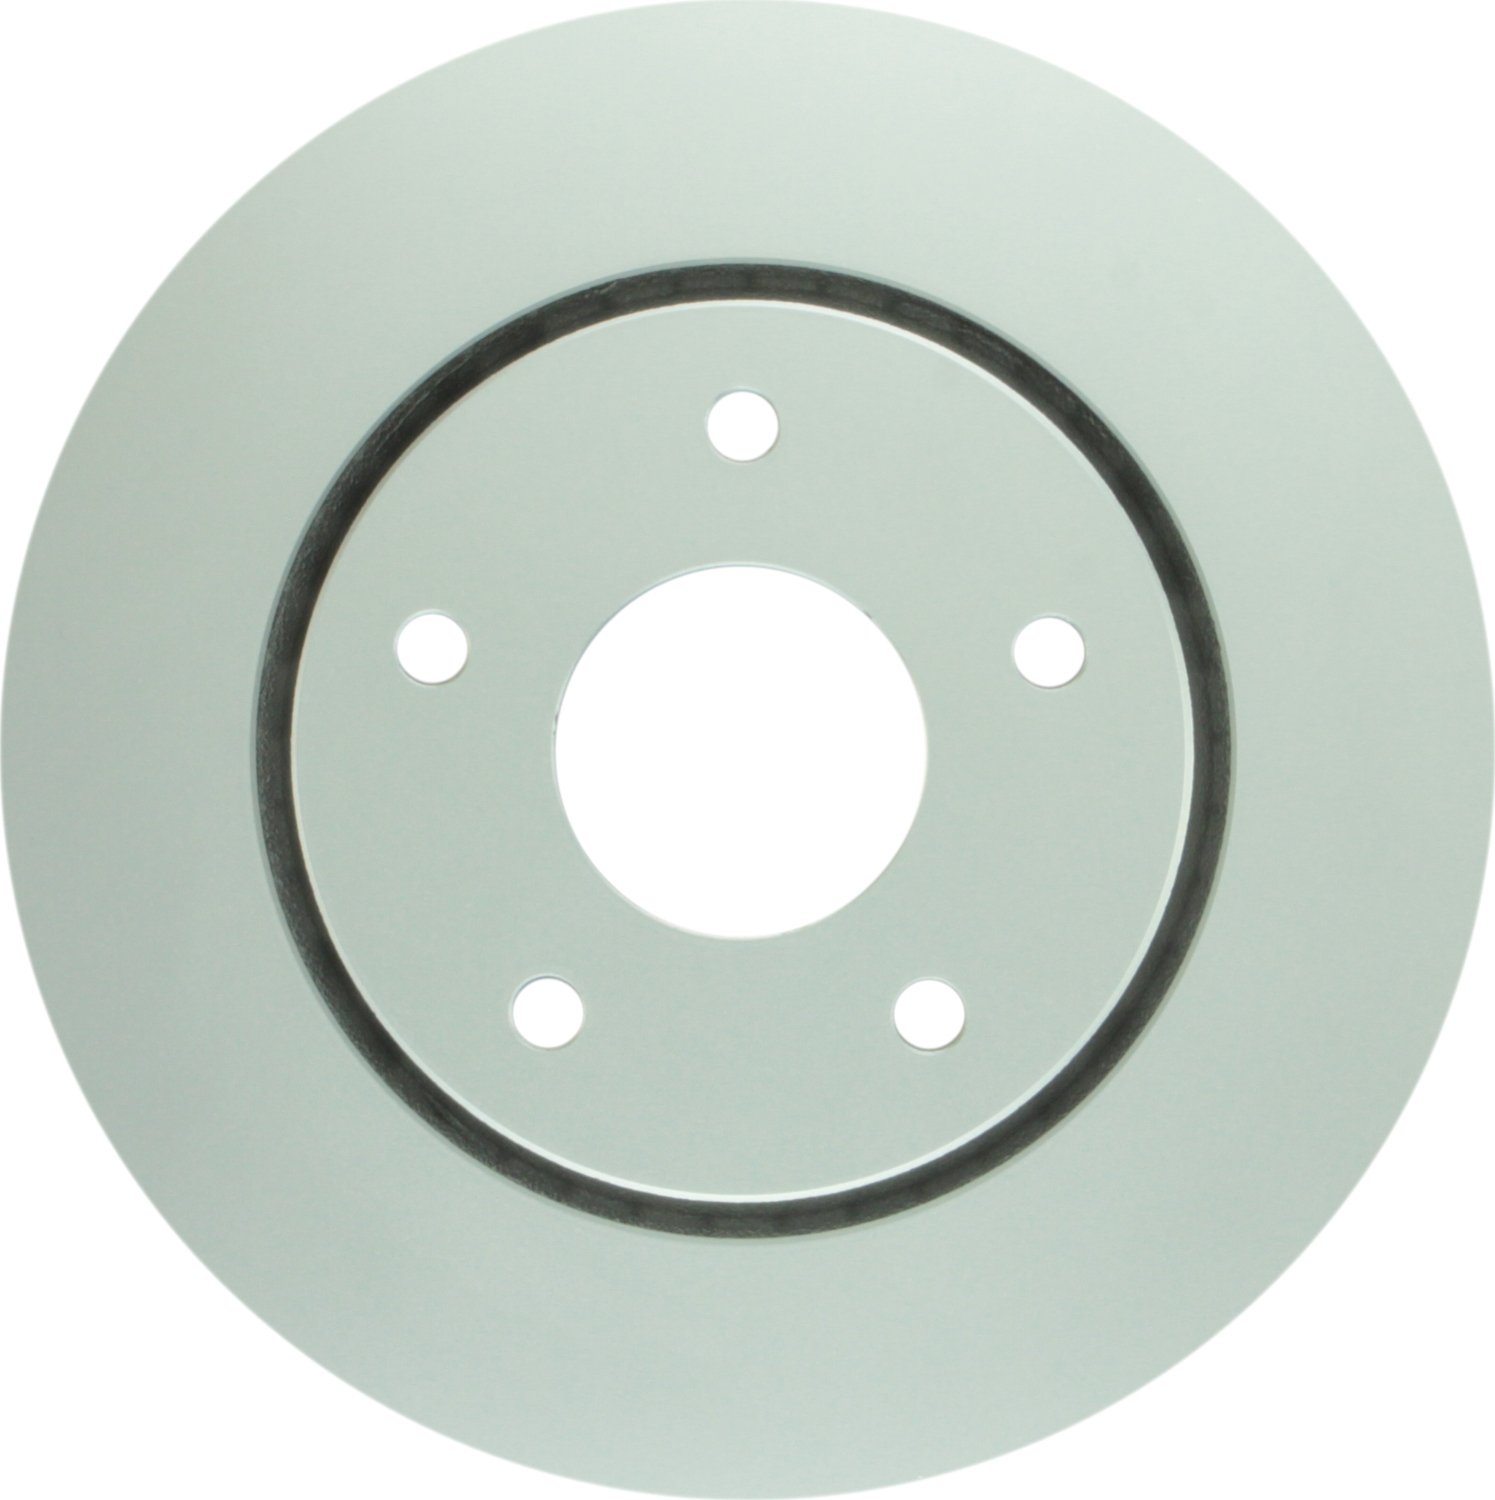 Bosch 16011440 QuietCast Premium Disc Brake Rotor